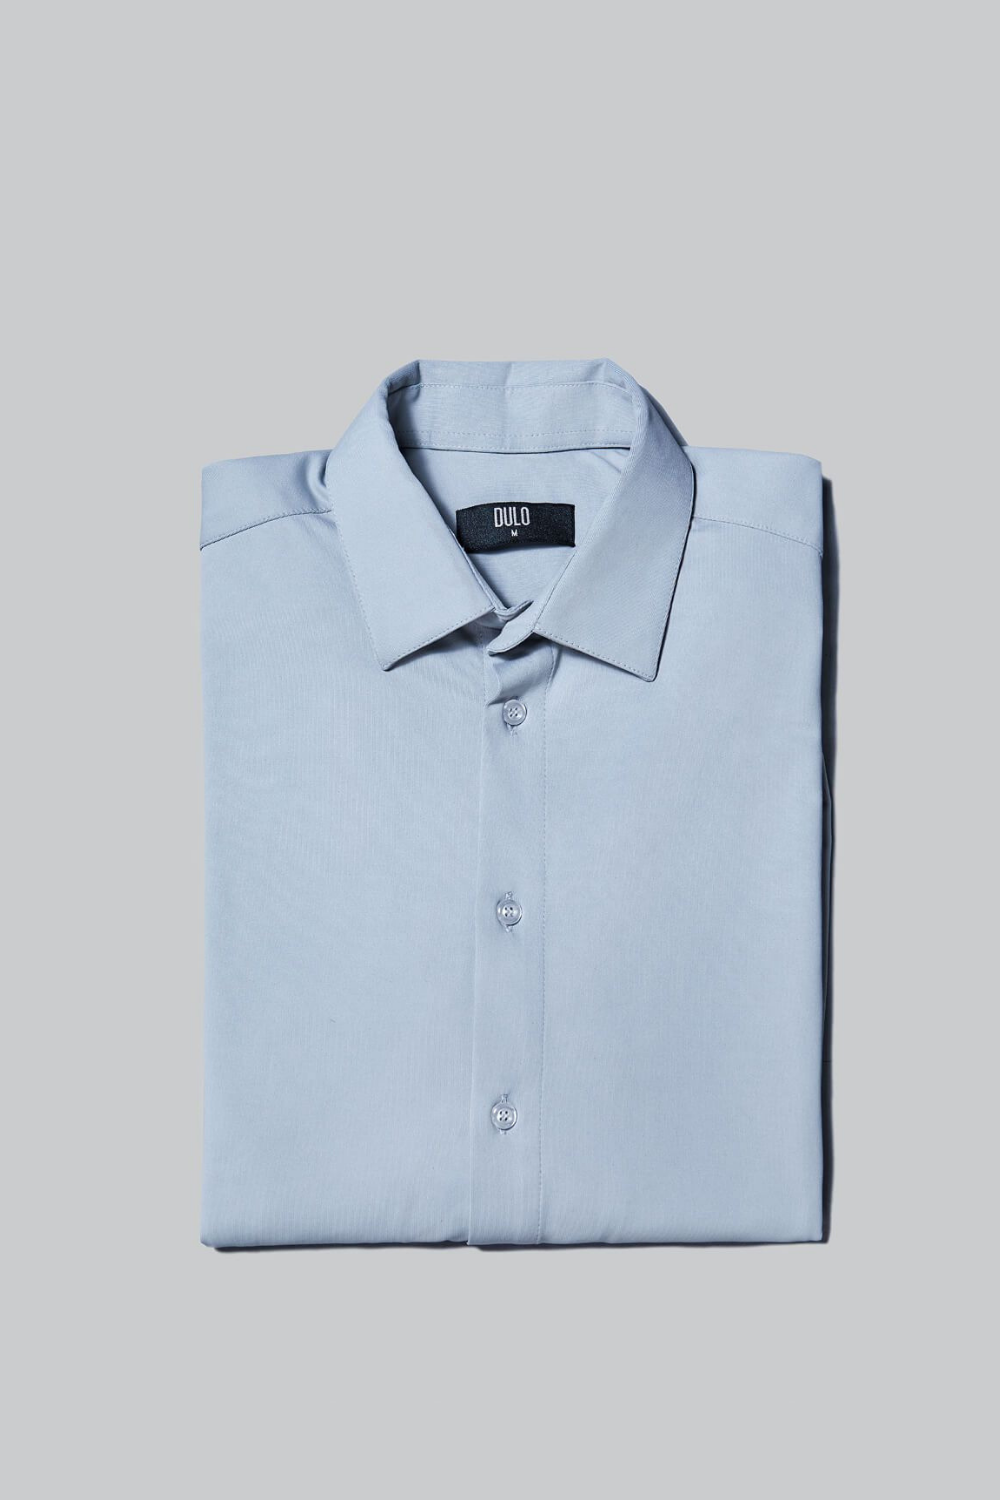 DULO Dress Shirt From Performance Fabric - Grey